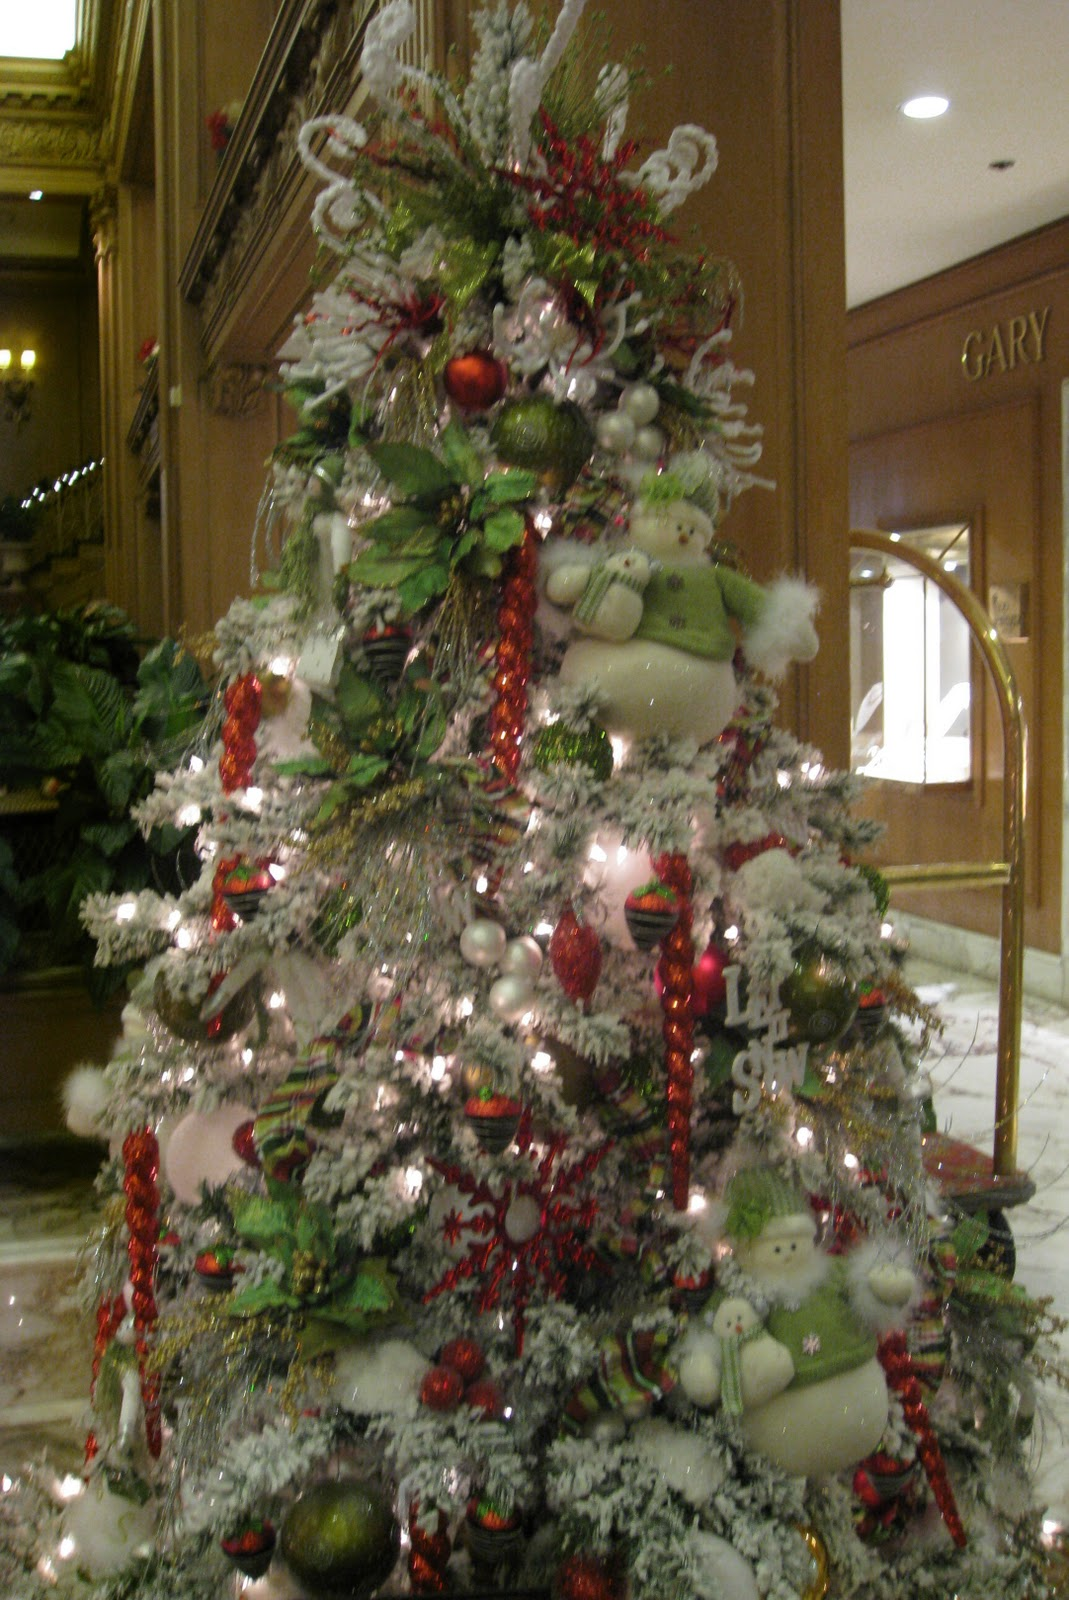 Christmas Tree Decorated Professionally : How to decorate a christmas tree professionally with ribbon